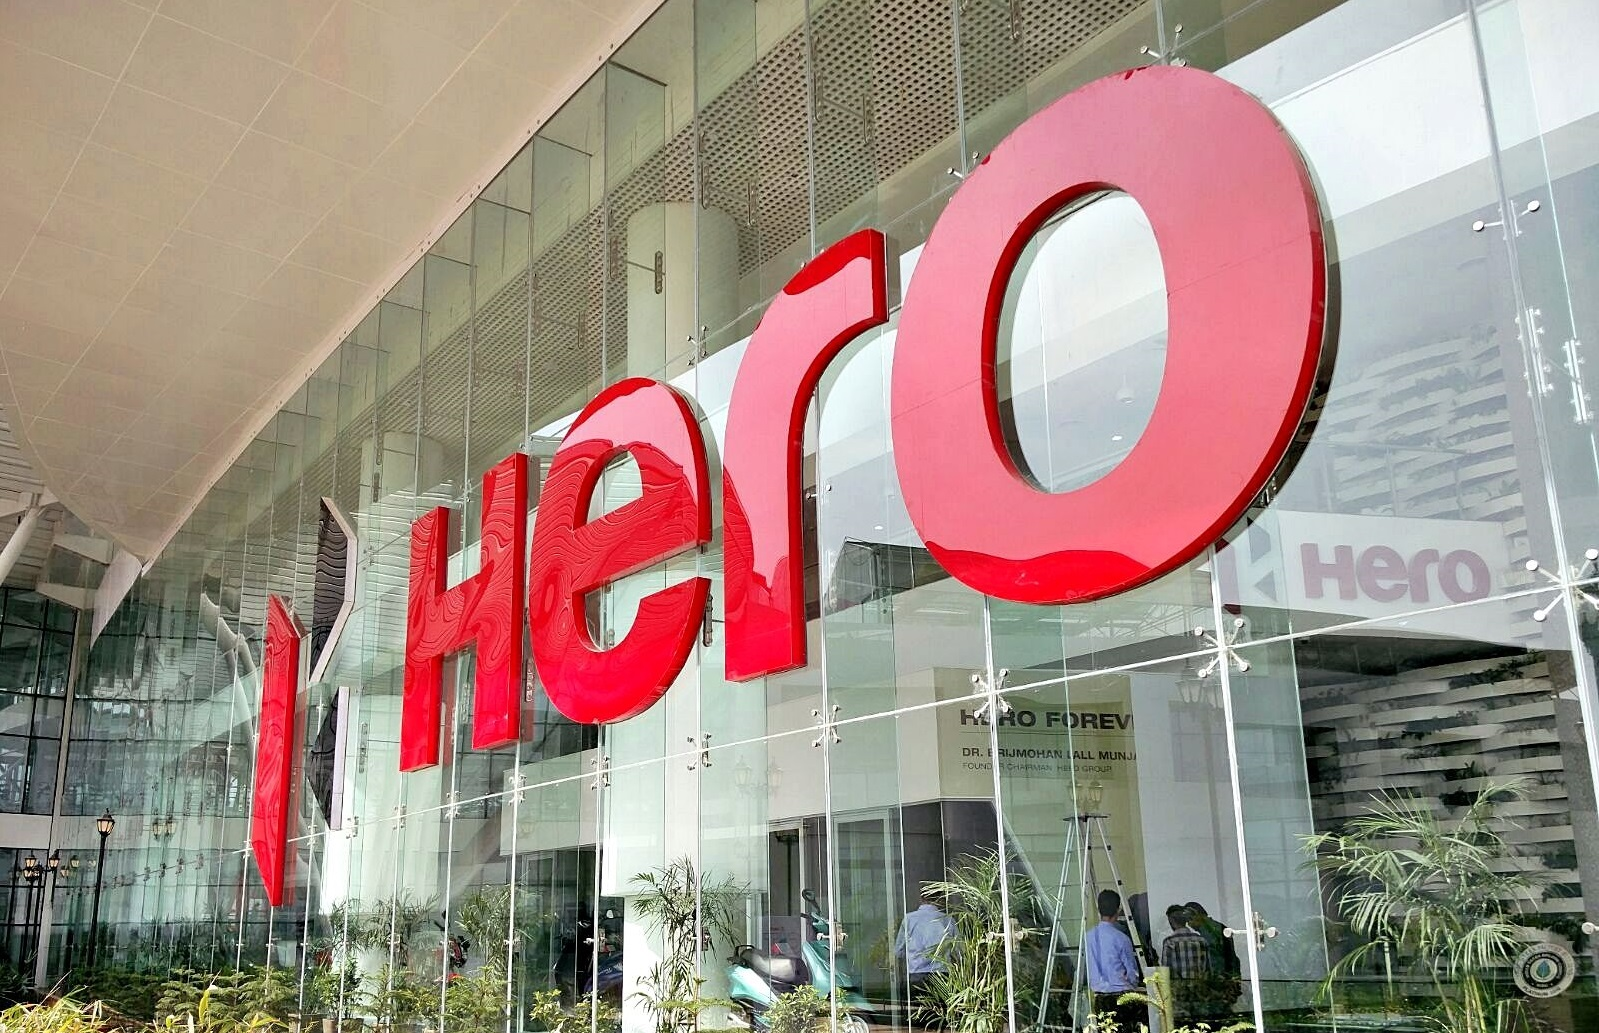 Hero Group, starts hiring for its soon-to-be launched ed-tech startup